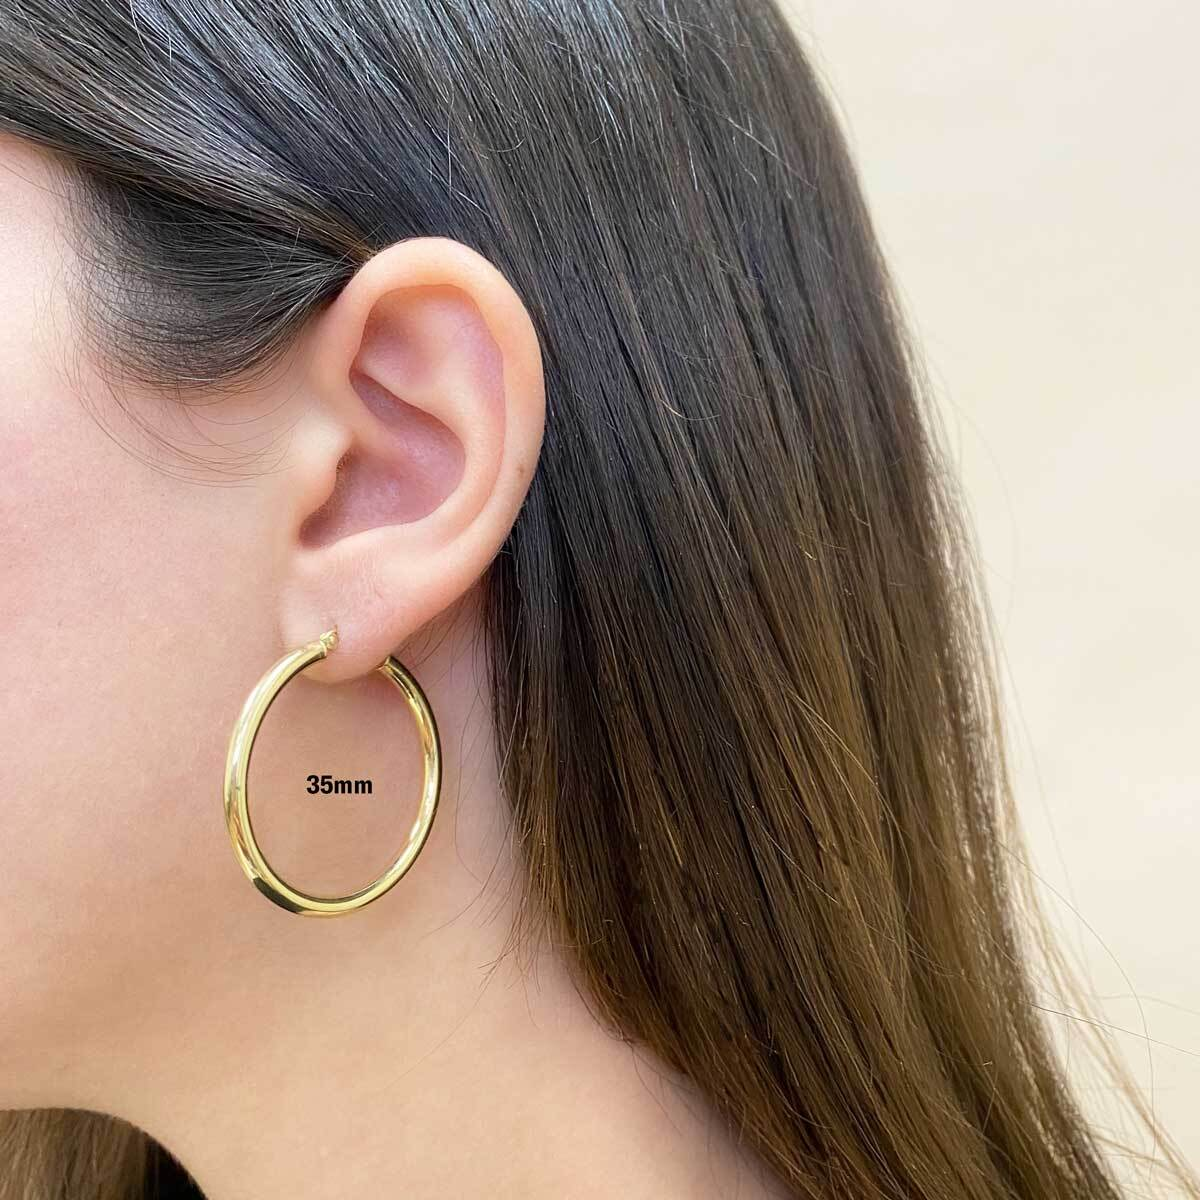 3mm Gold Tube Hoop Earrings